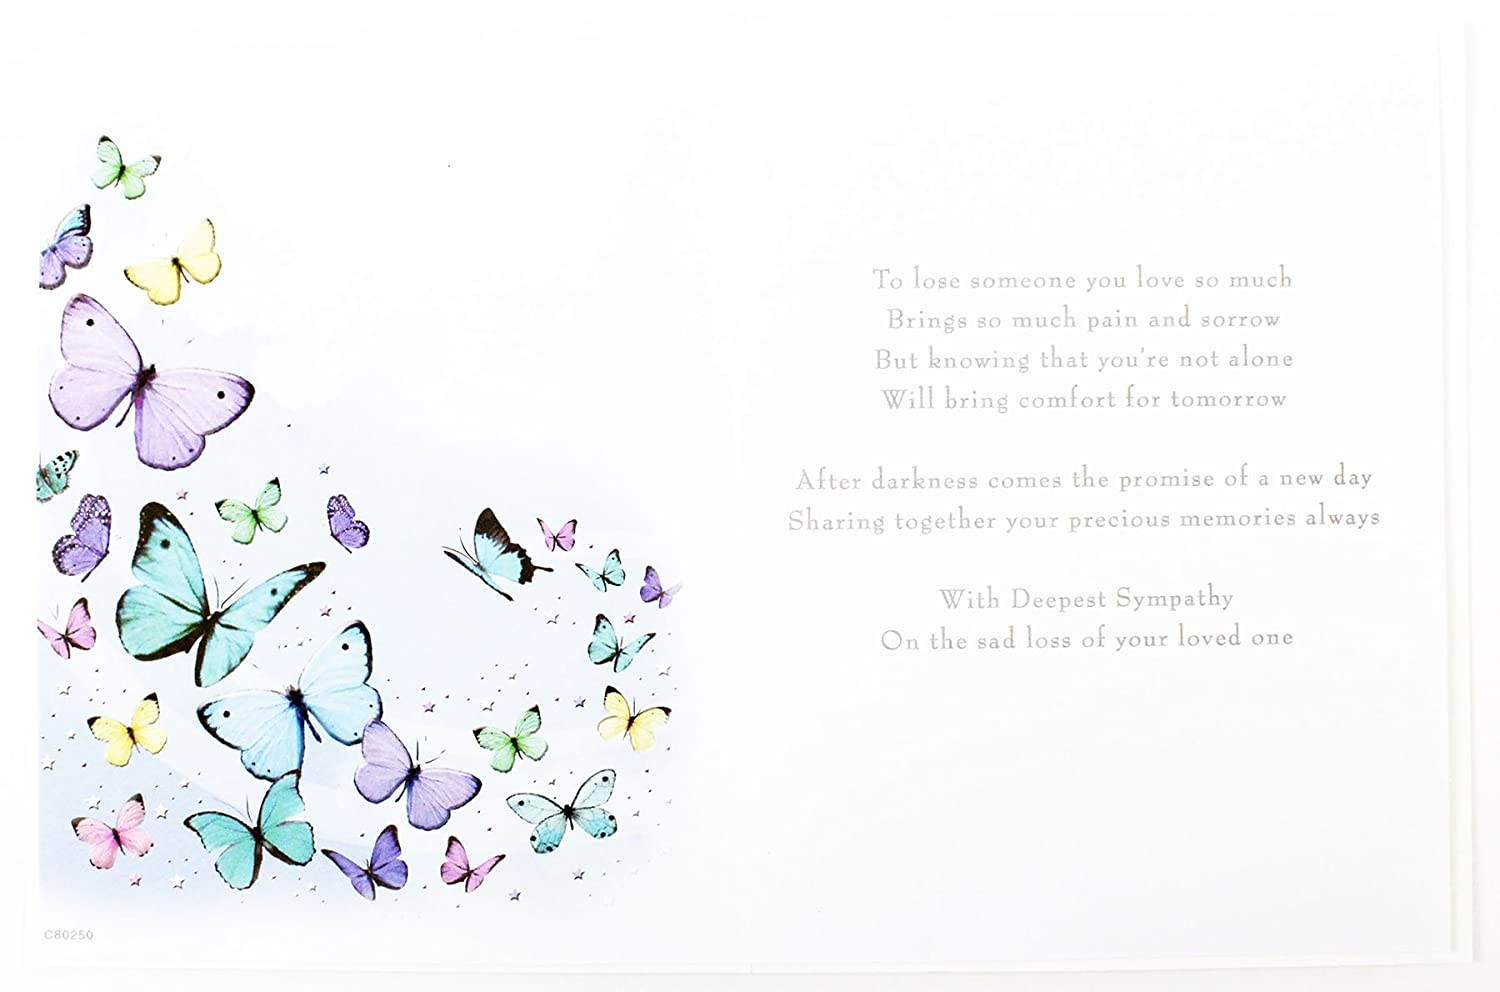 Deepest Sympathy Greeting Card Loss To Your Family Thinking Of You